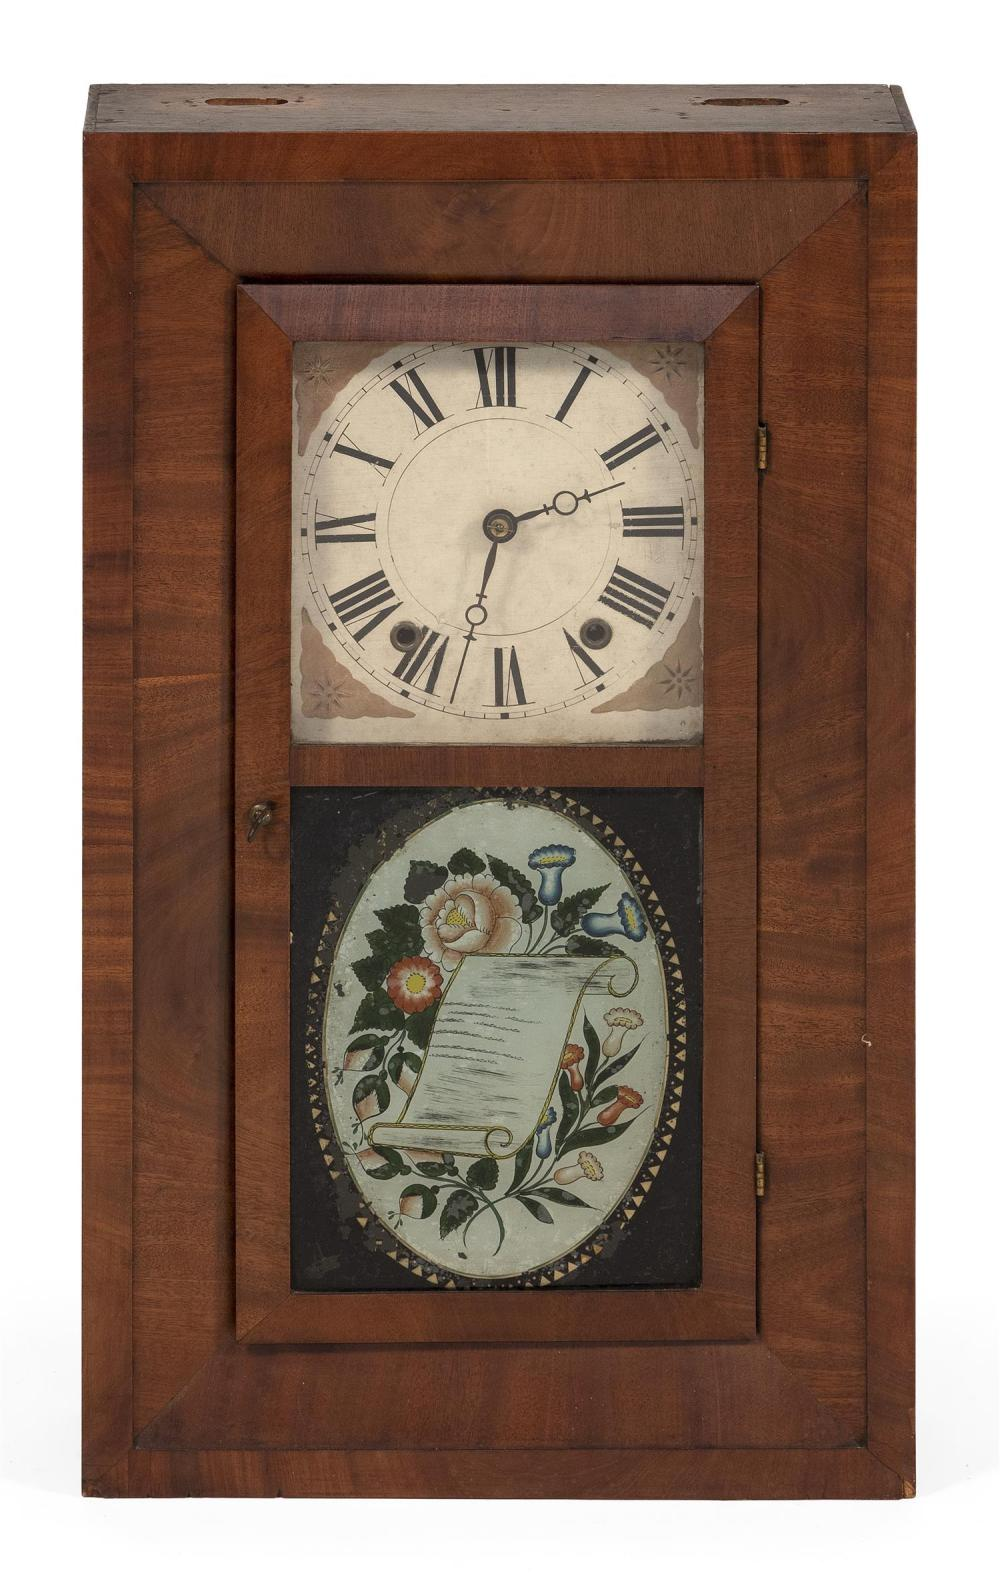 """LEVI SMITH CASED MANTEL CLOCK Mahogany veneer case. Reverse-painted glass depicts flowers. Height 26.5"""". Width 15.75"""". Depth 4.5"""". I..."""